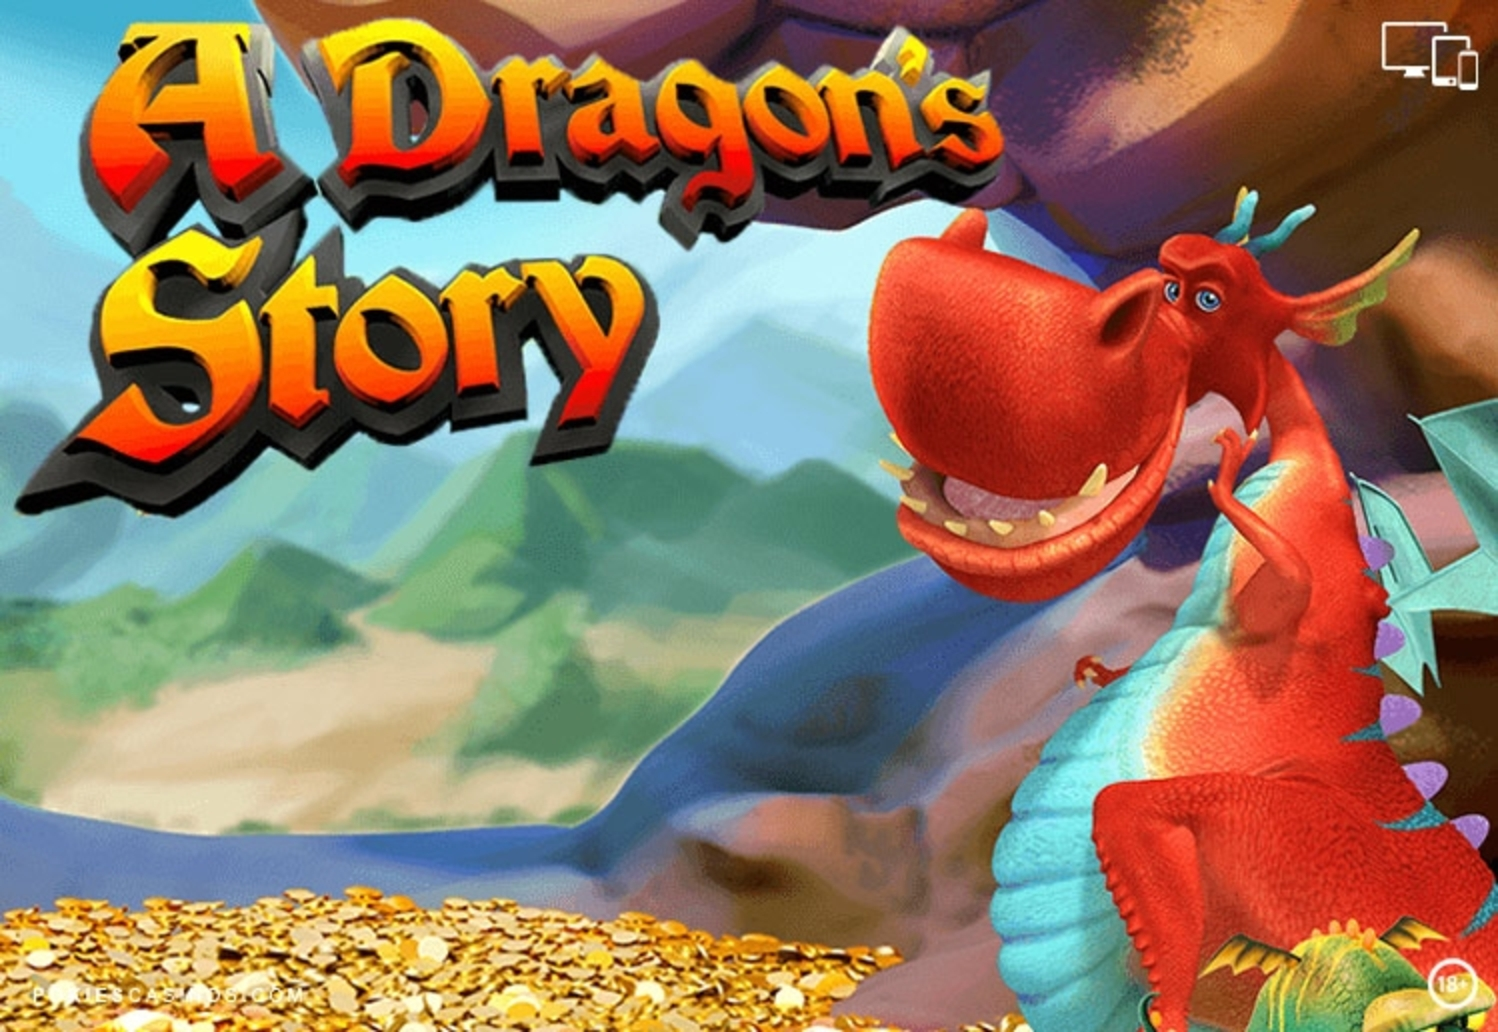 The A Dragon Story Online Slot Demo Game by NextGen